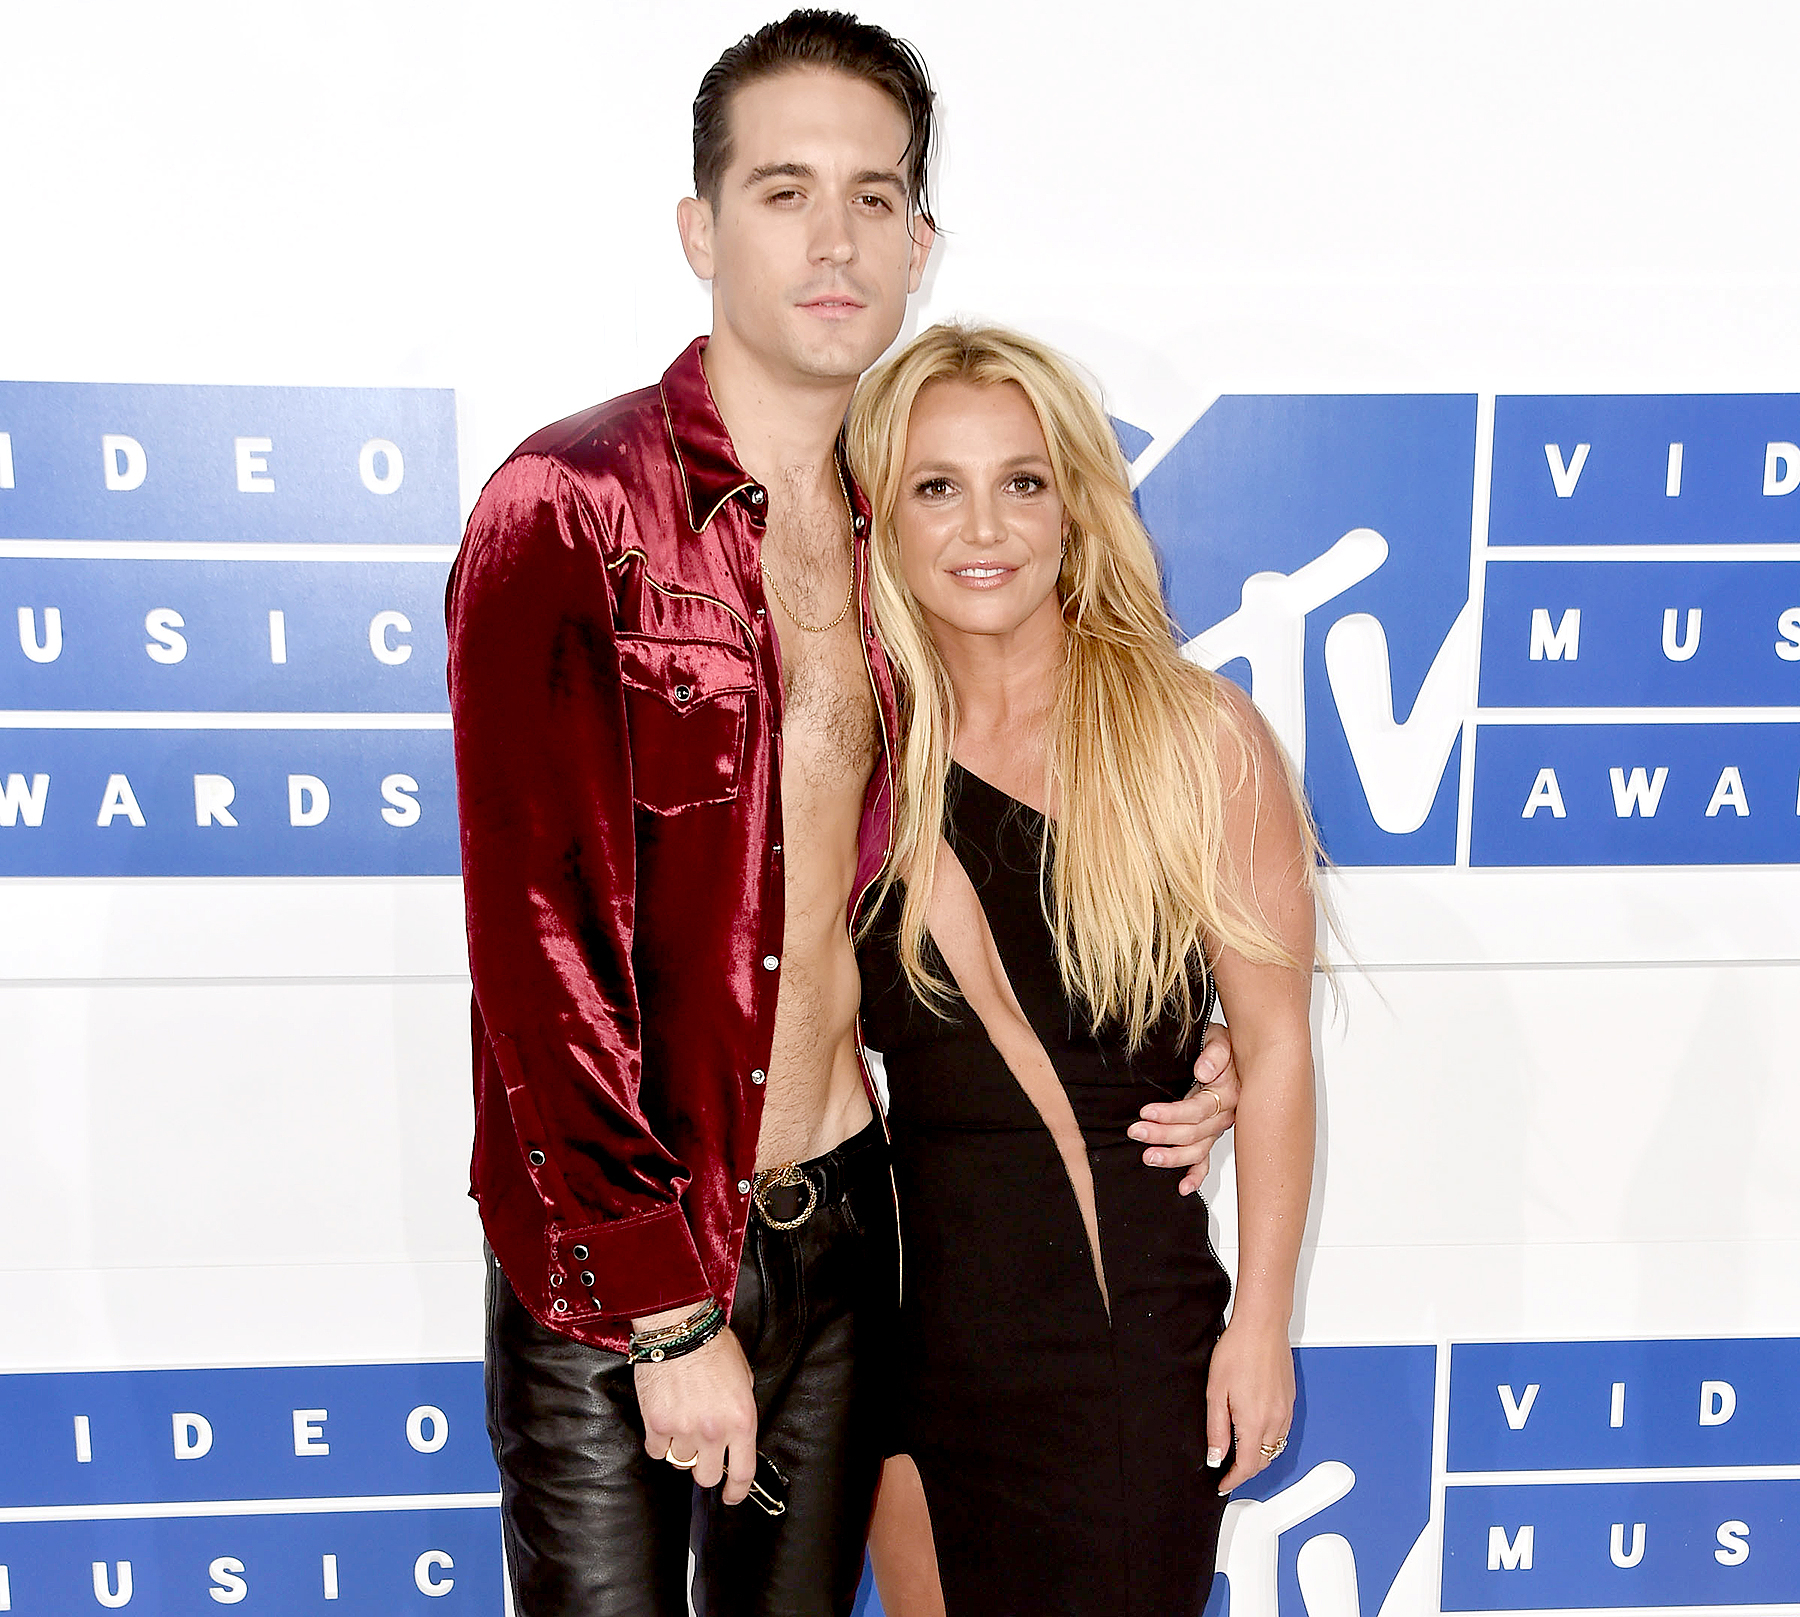 Rapper G-Eazy and Britney Spears attend the 2016 MTV Video Music Awards.